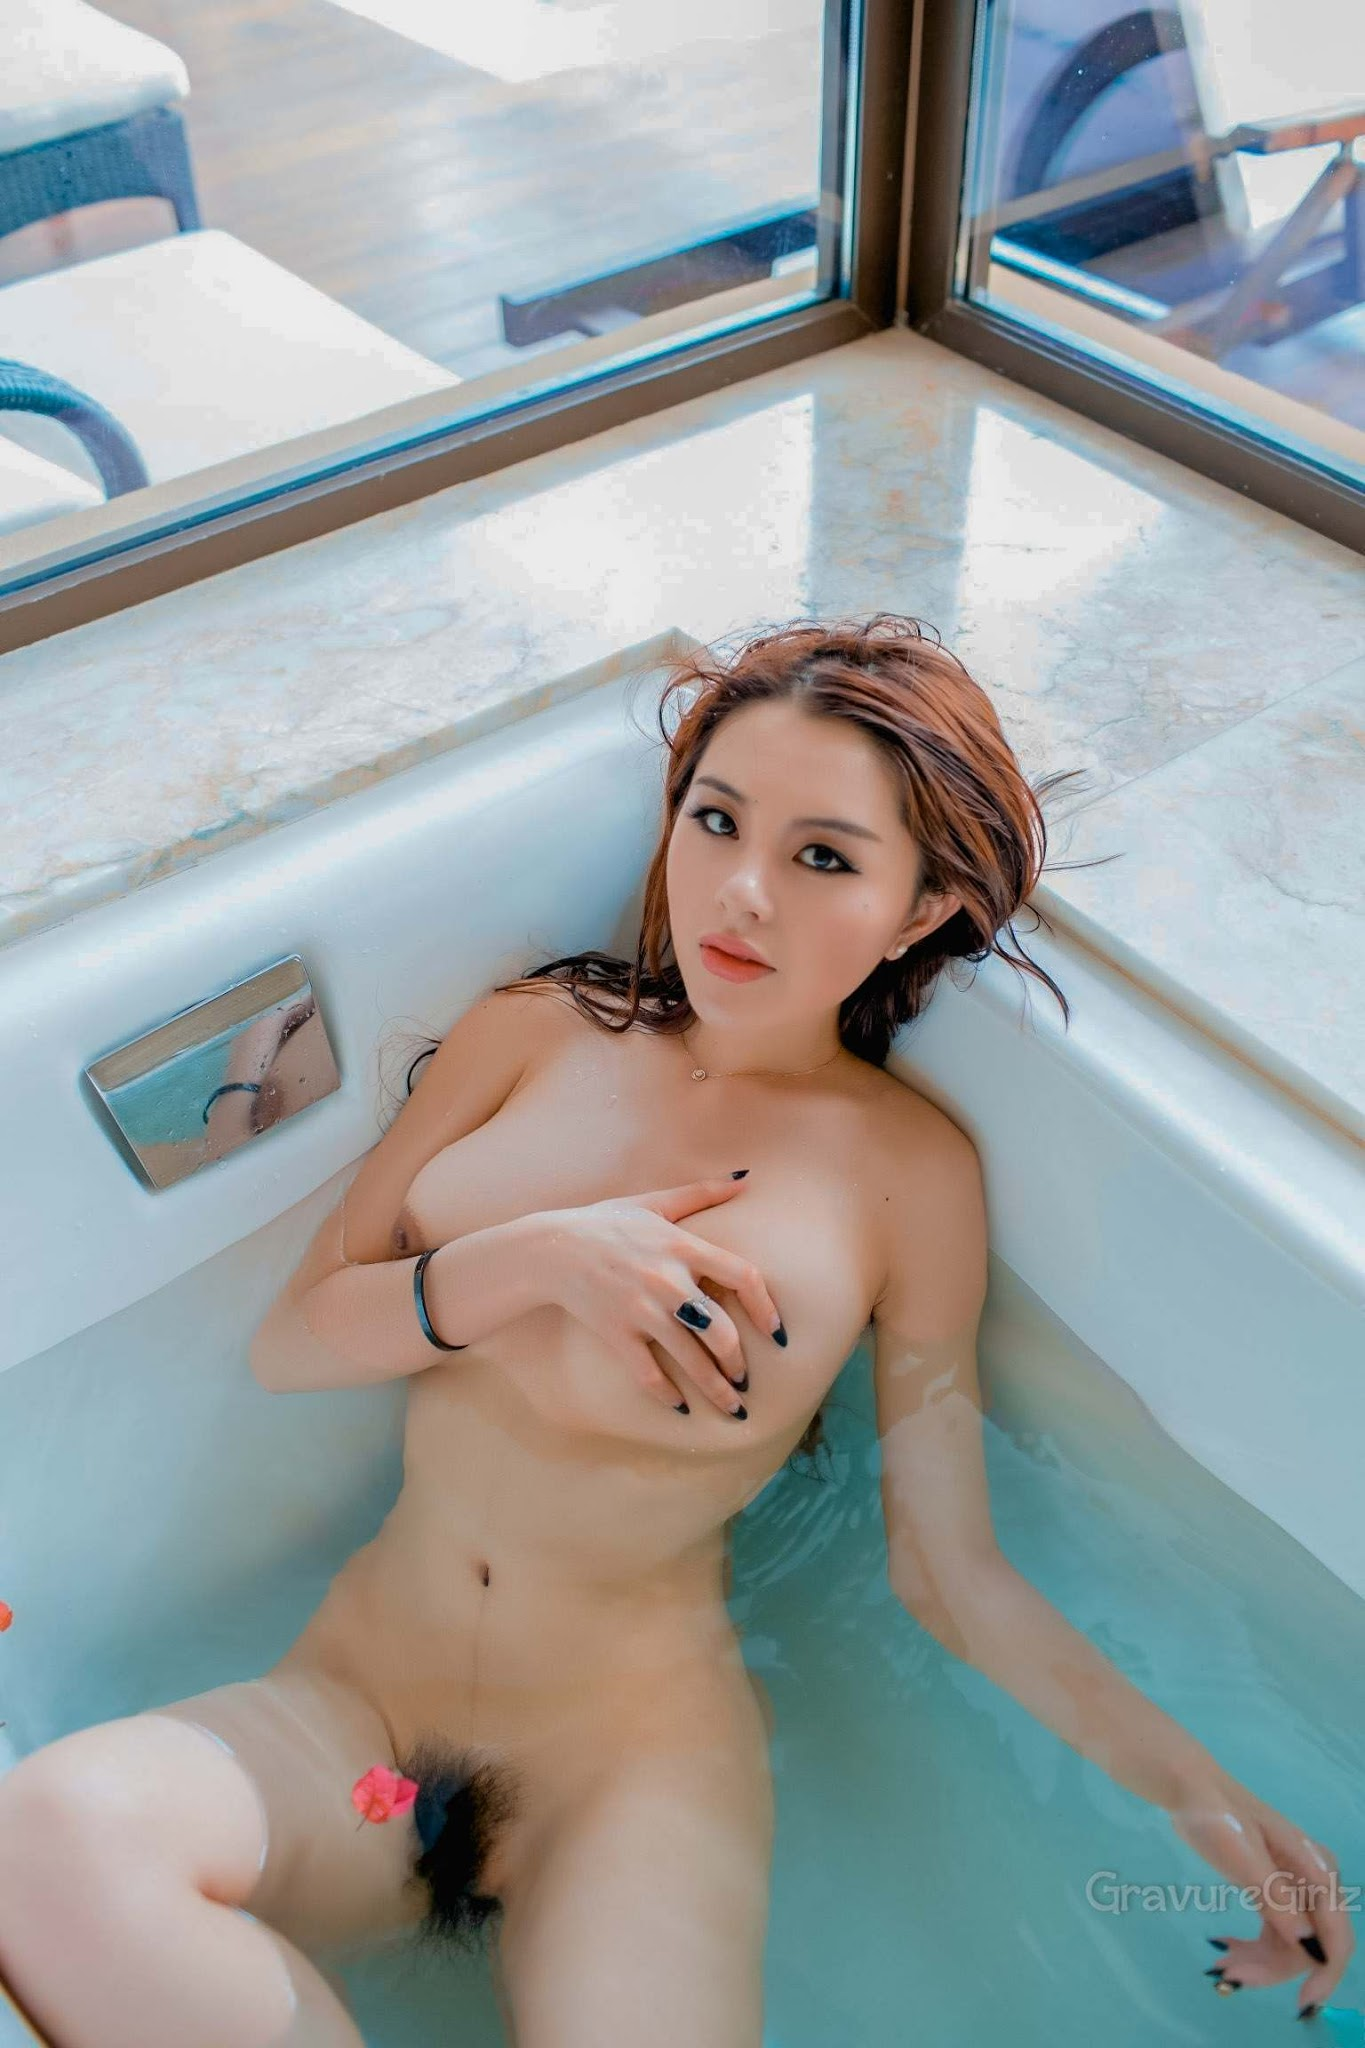 Zhao Wei Yi 赵惟依 Vol.005 | Bathtub Nudity | TuiGirl Special ...